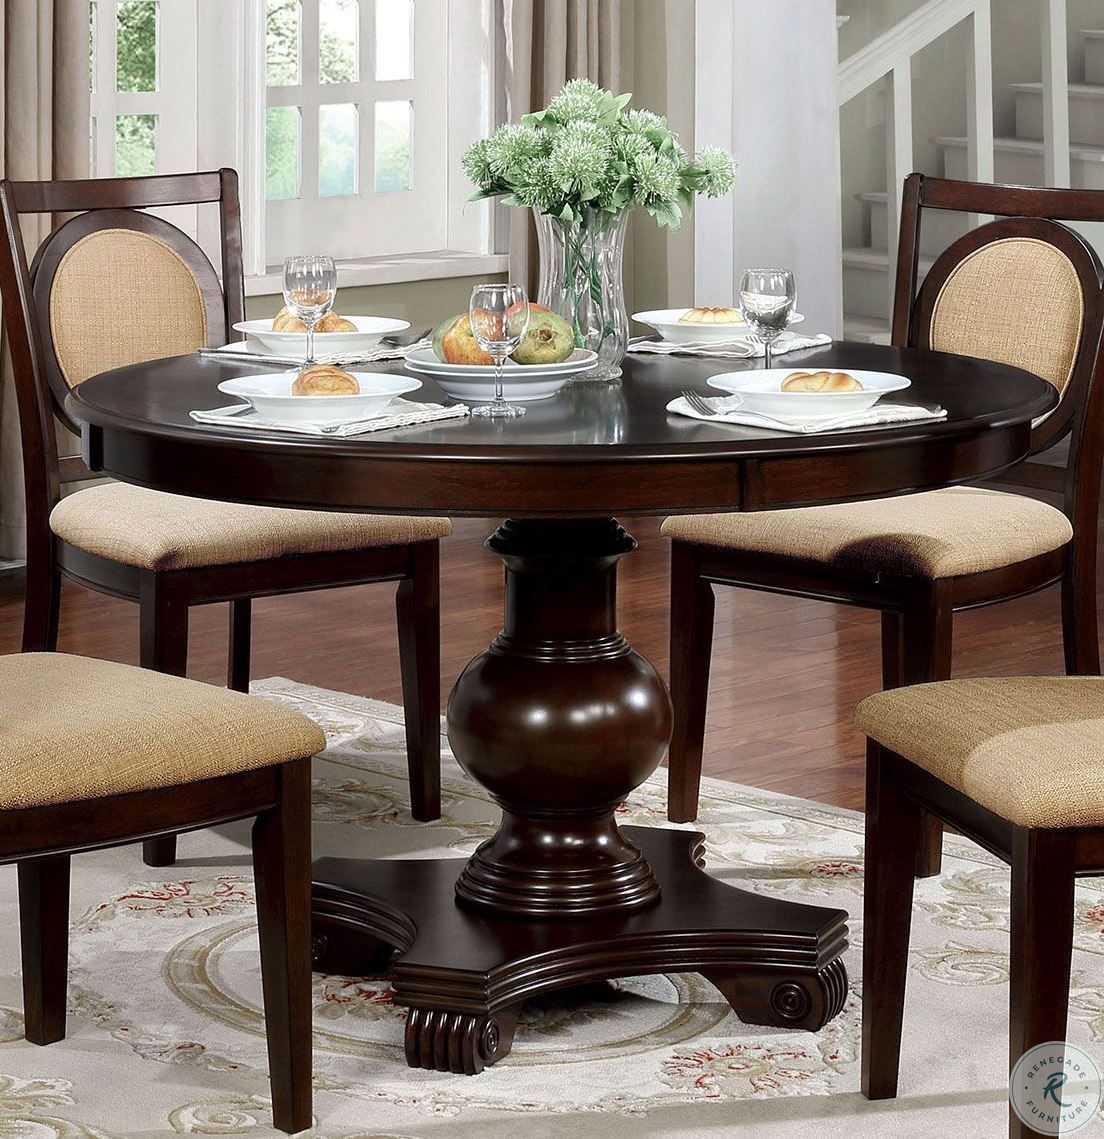 Savion Espresso Oval Extendable Dining Room Set In 2020 Dining Table In Kitchen Round Dining Oval Table Dining